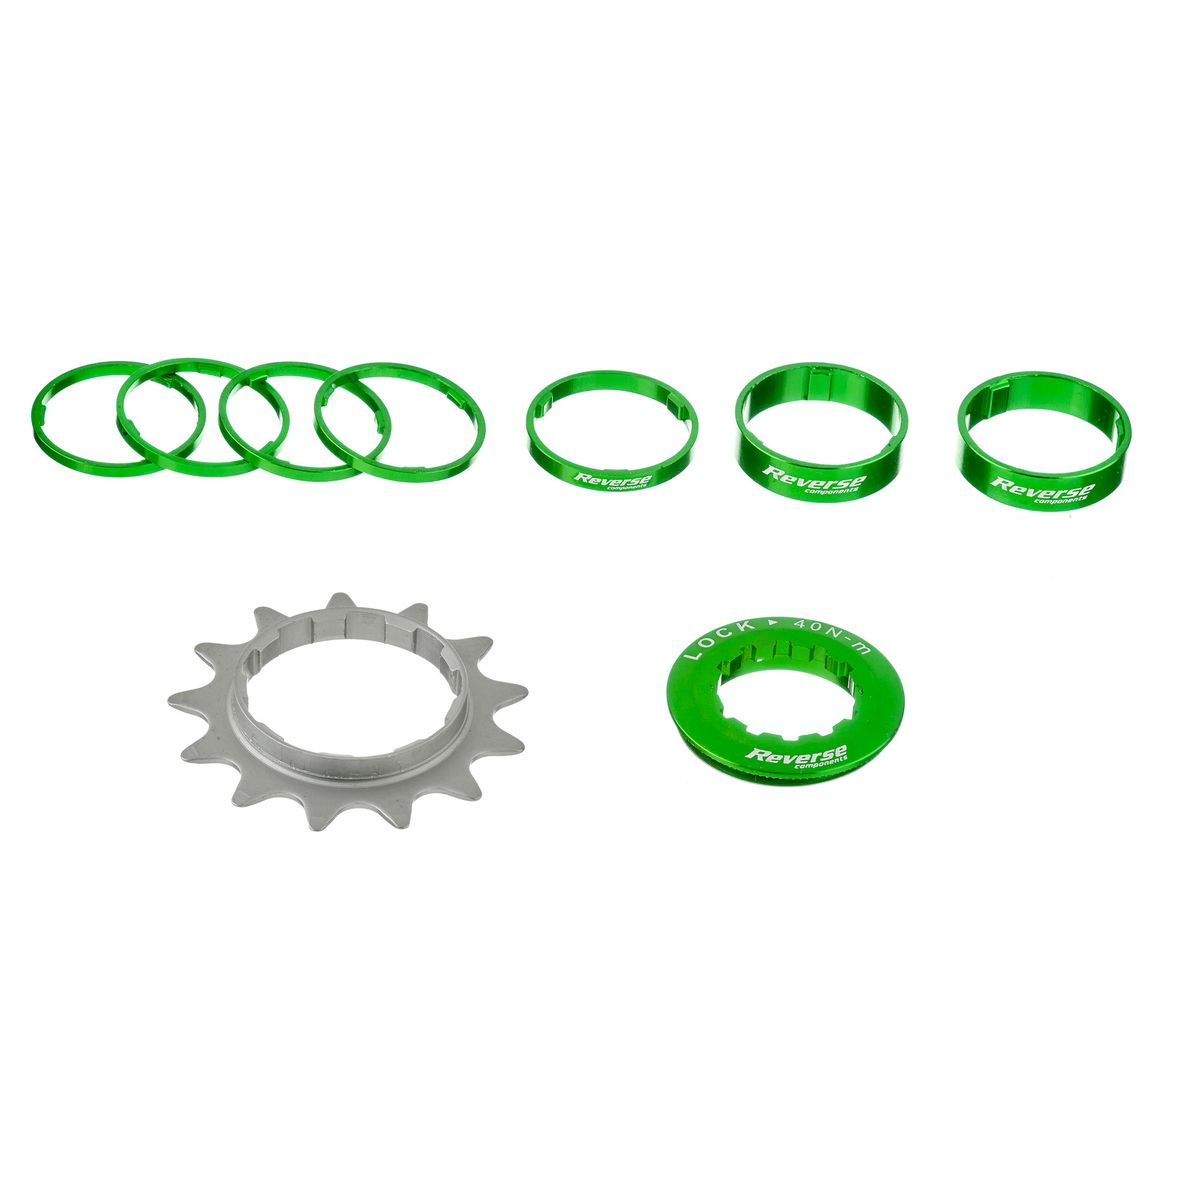 REVERSE Single Speed Kit